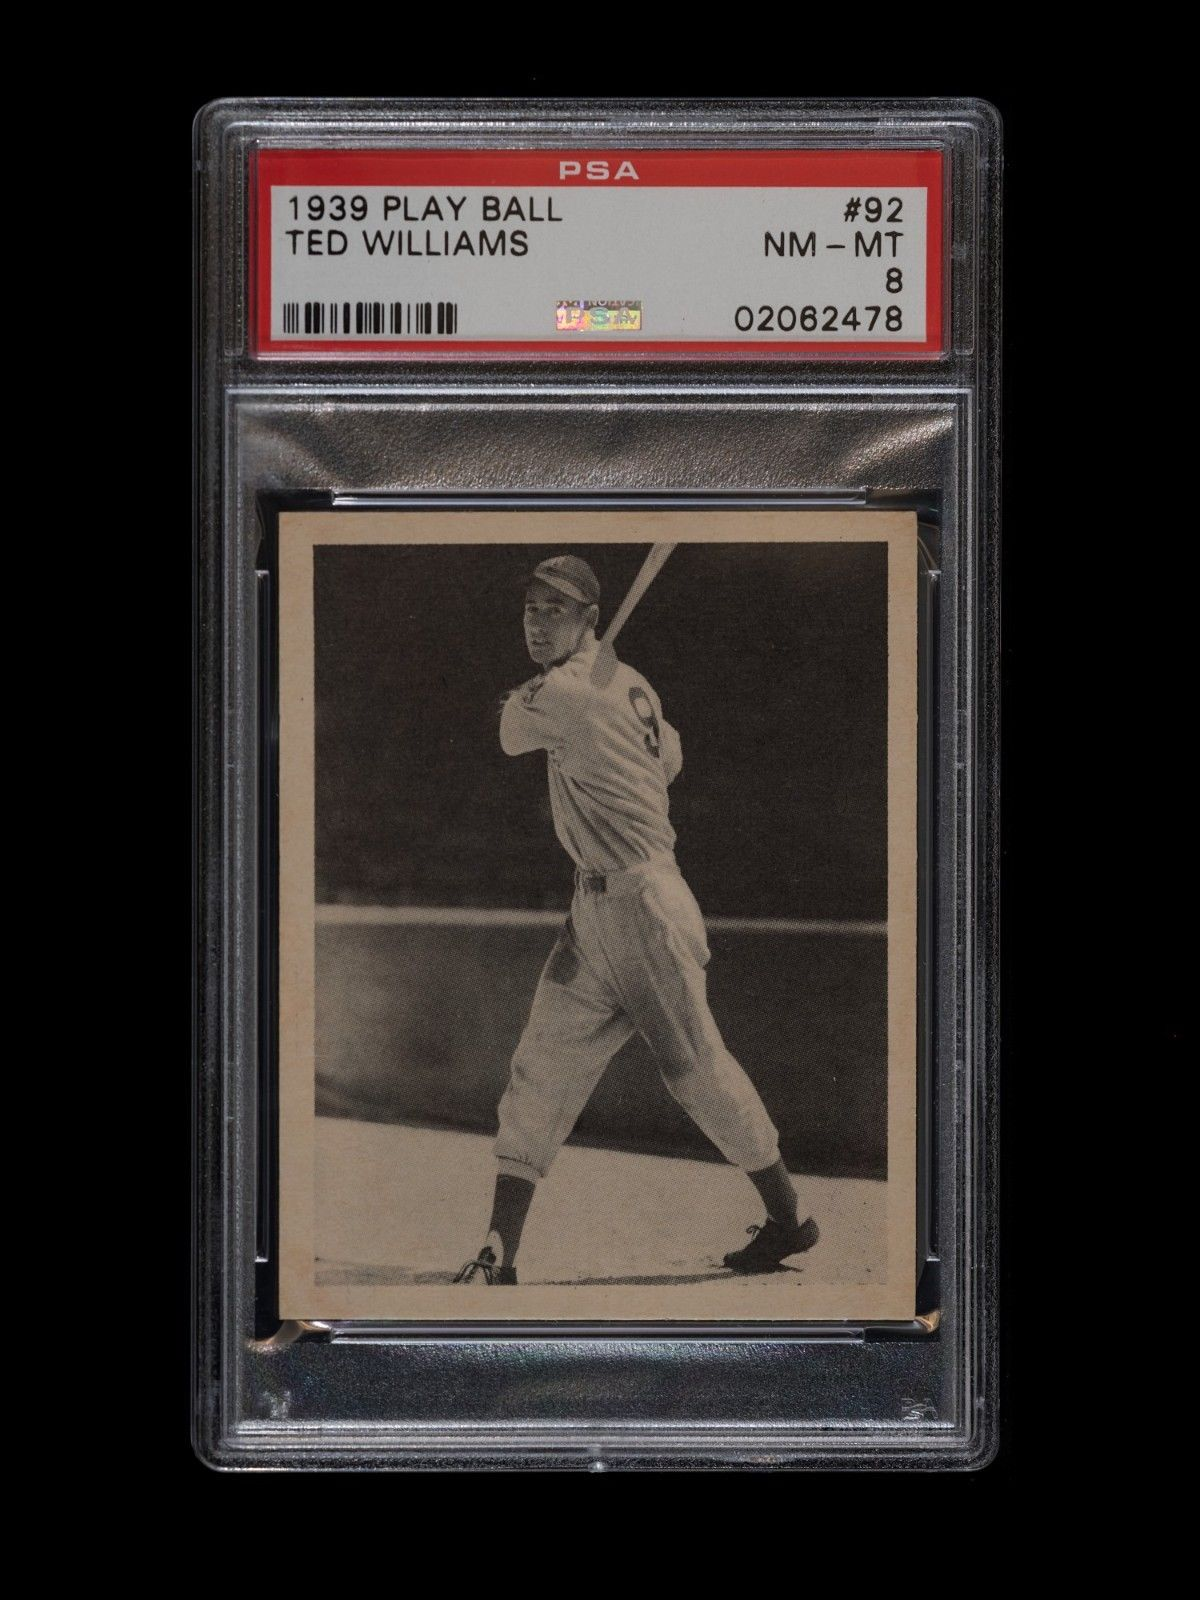 1939-Ted-Williams-PSA-8-FRONT